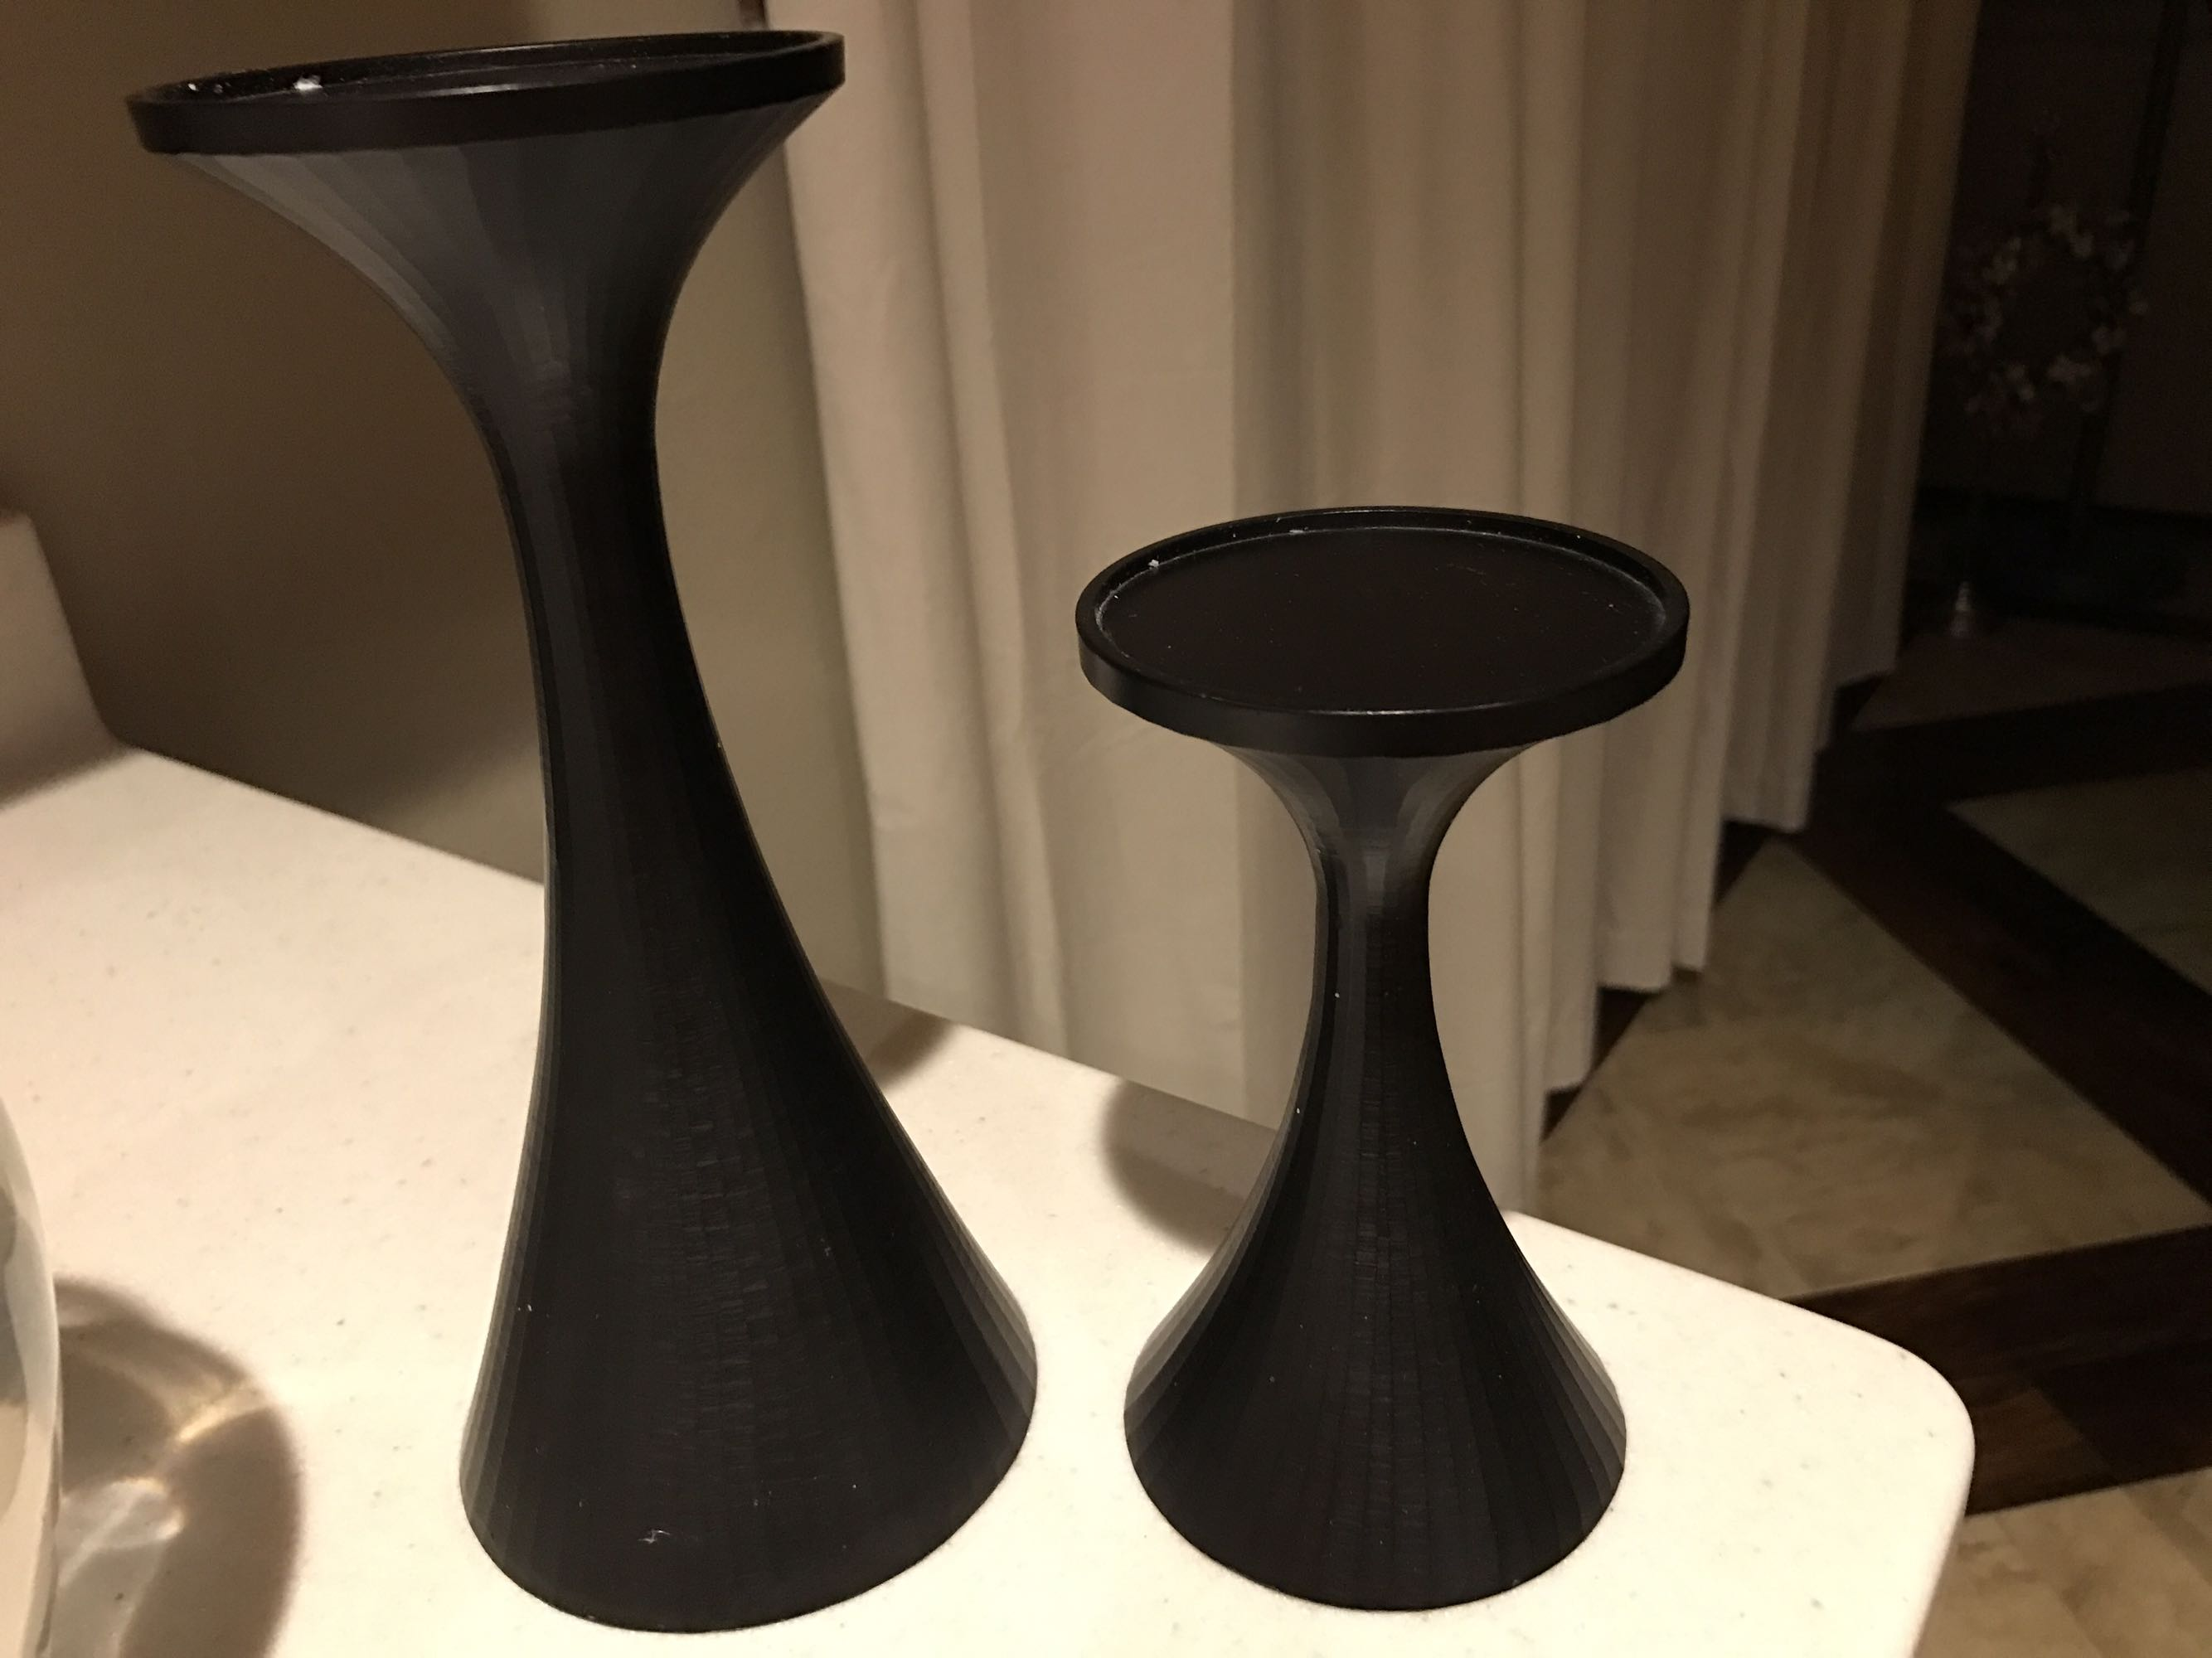 Crate&Barrel candle holders